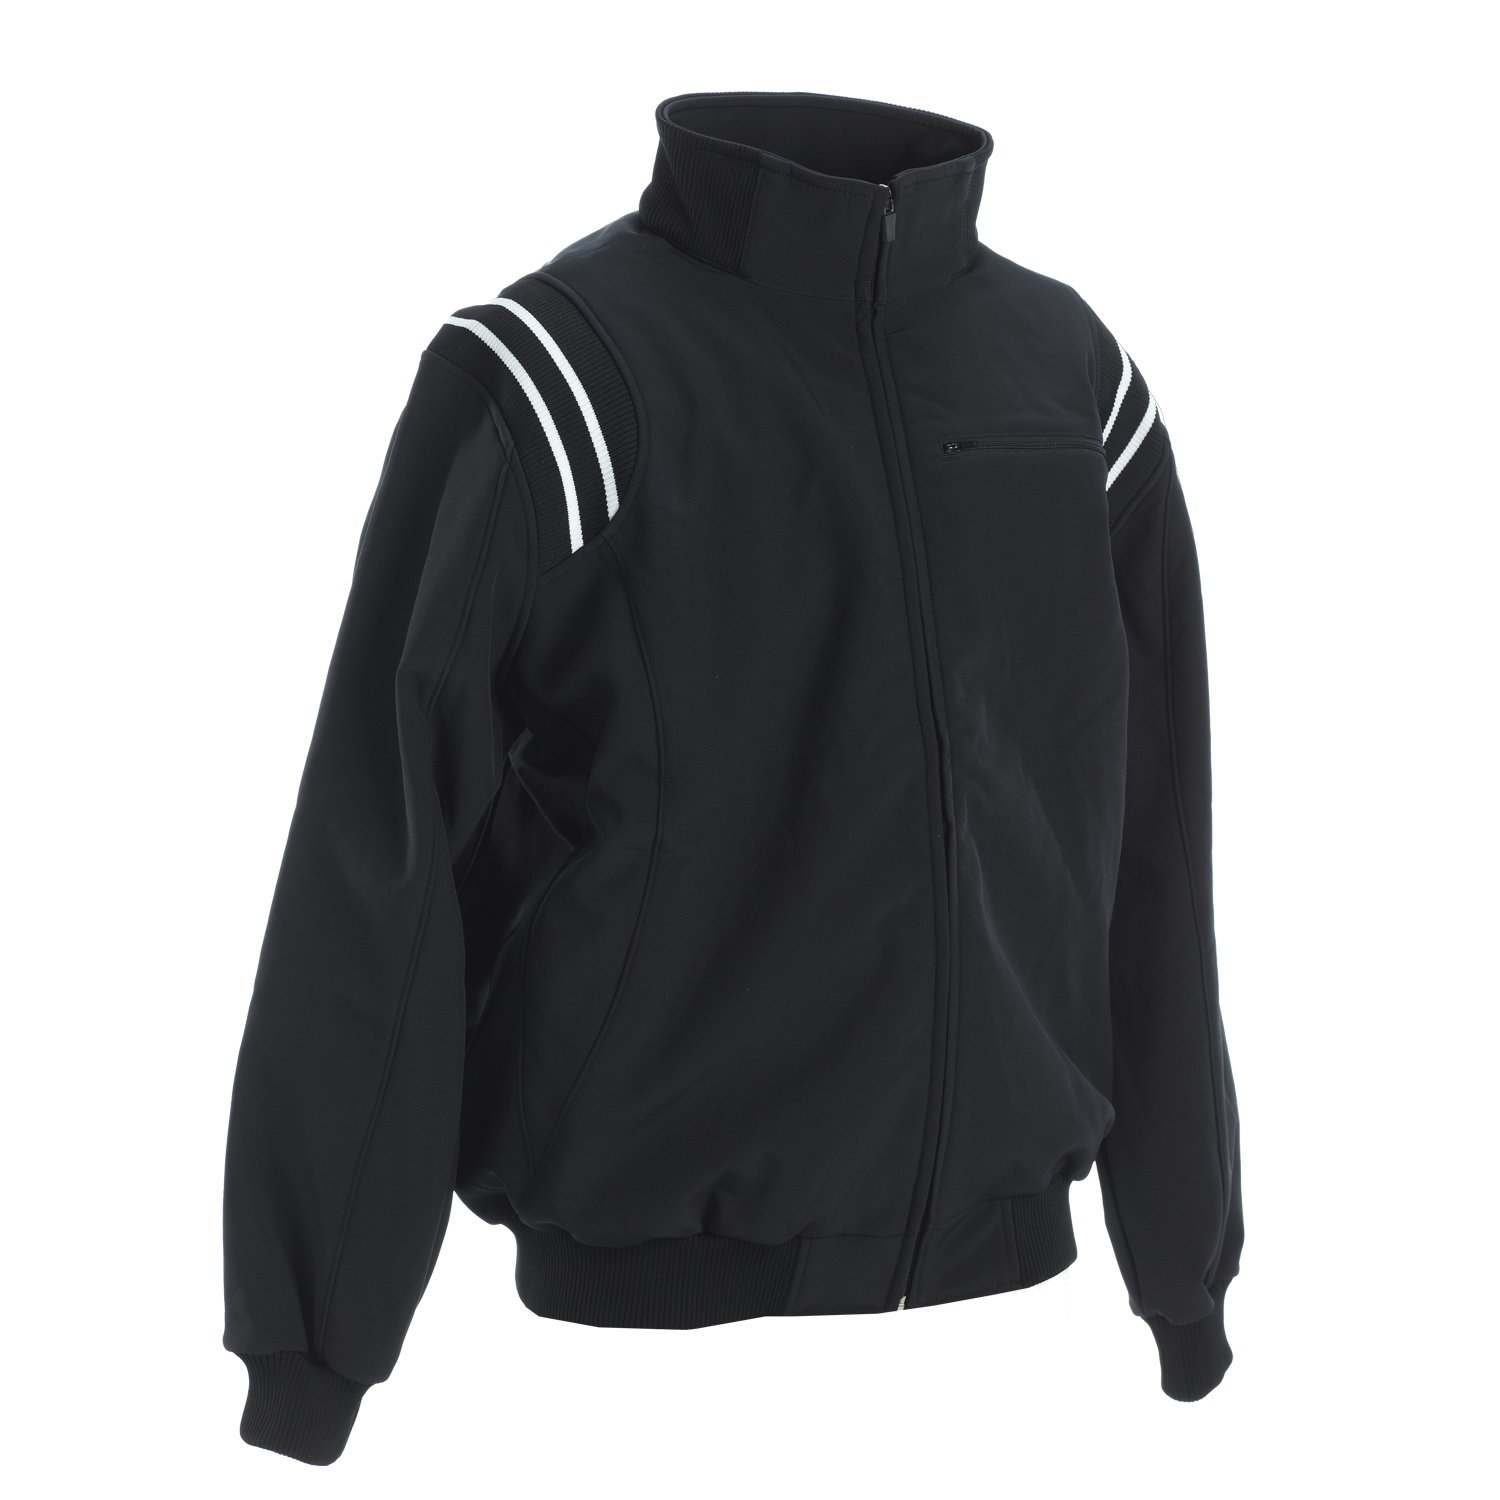 Adams USA Smitty Pro Style Cold Weather Jacket (Black/White, 4X-Large) by Adams USA (Image #1)